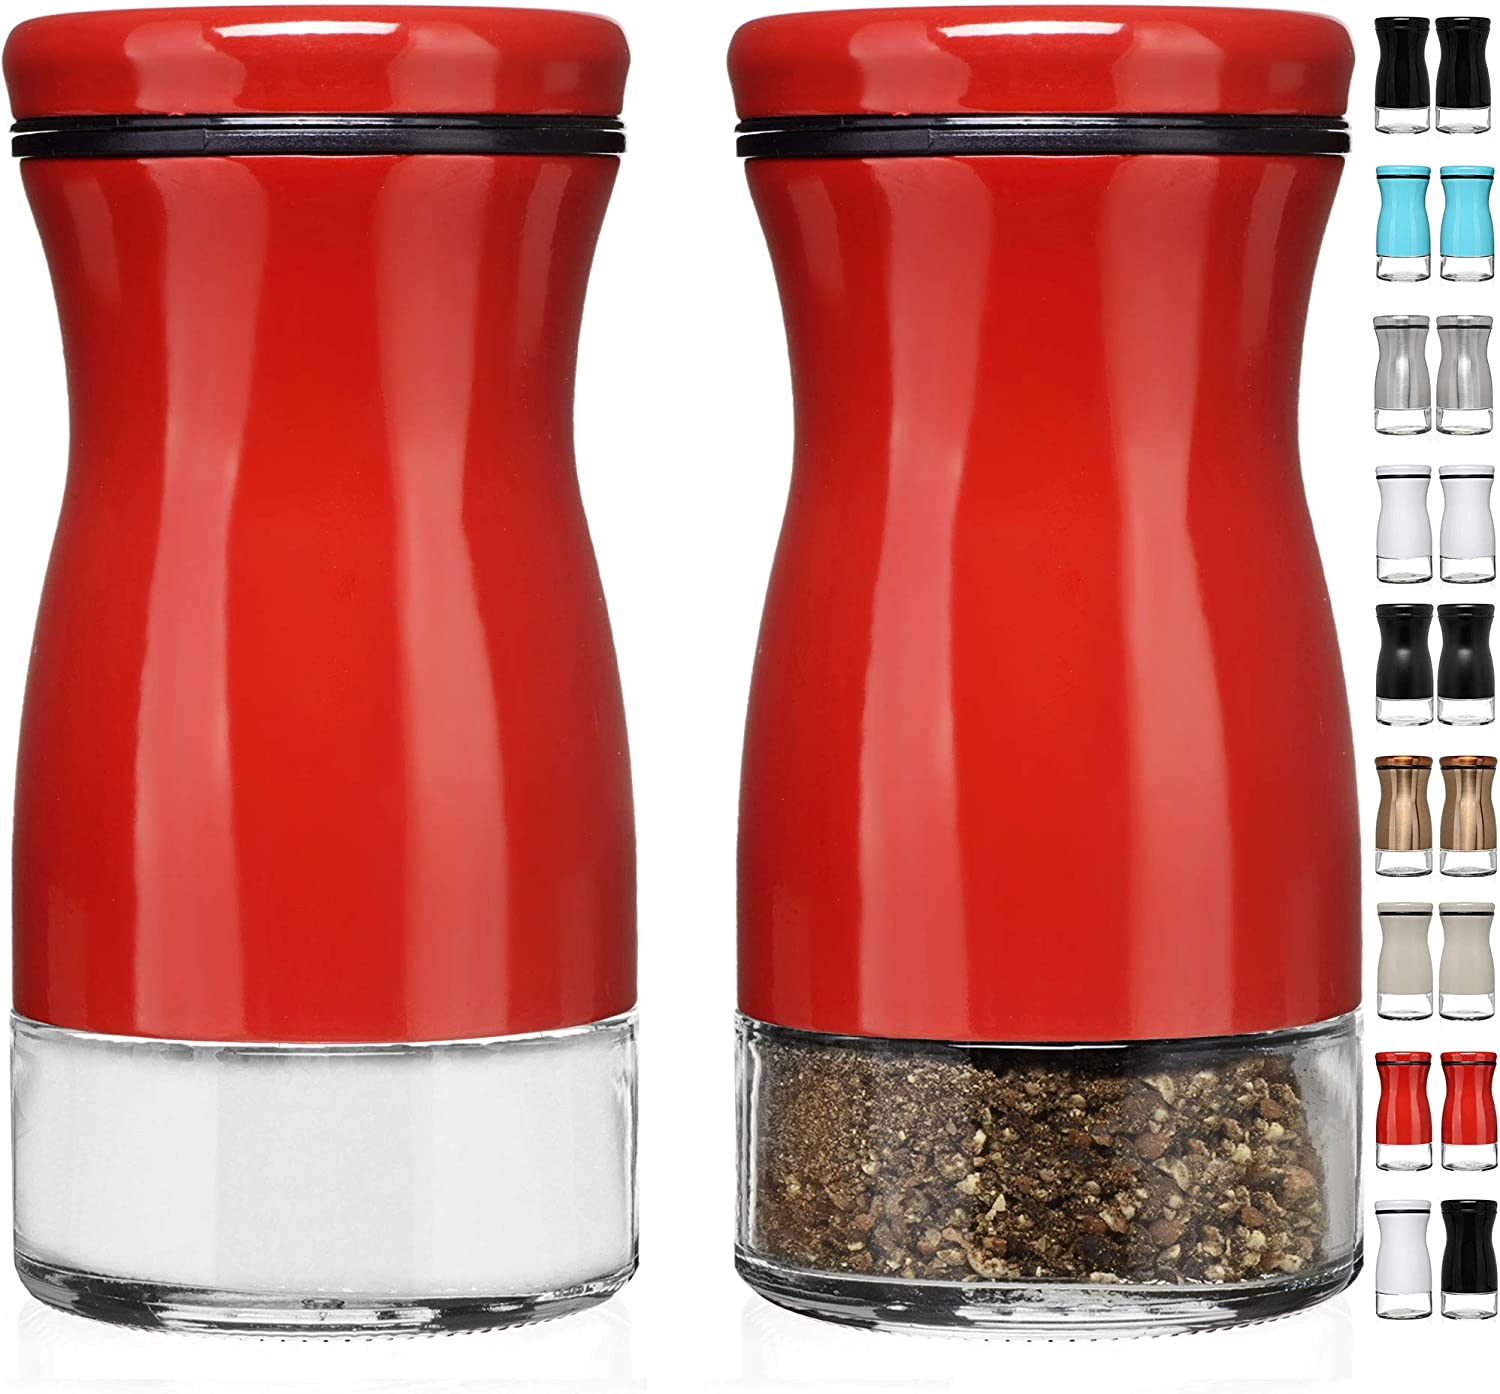 CHEFVANTAGE Salt and Pepper Shakers Set with Adjustable Pour Holes - Red